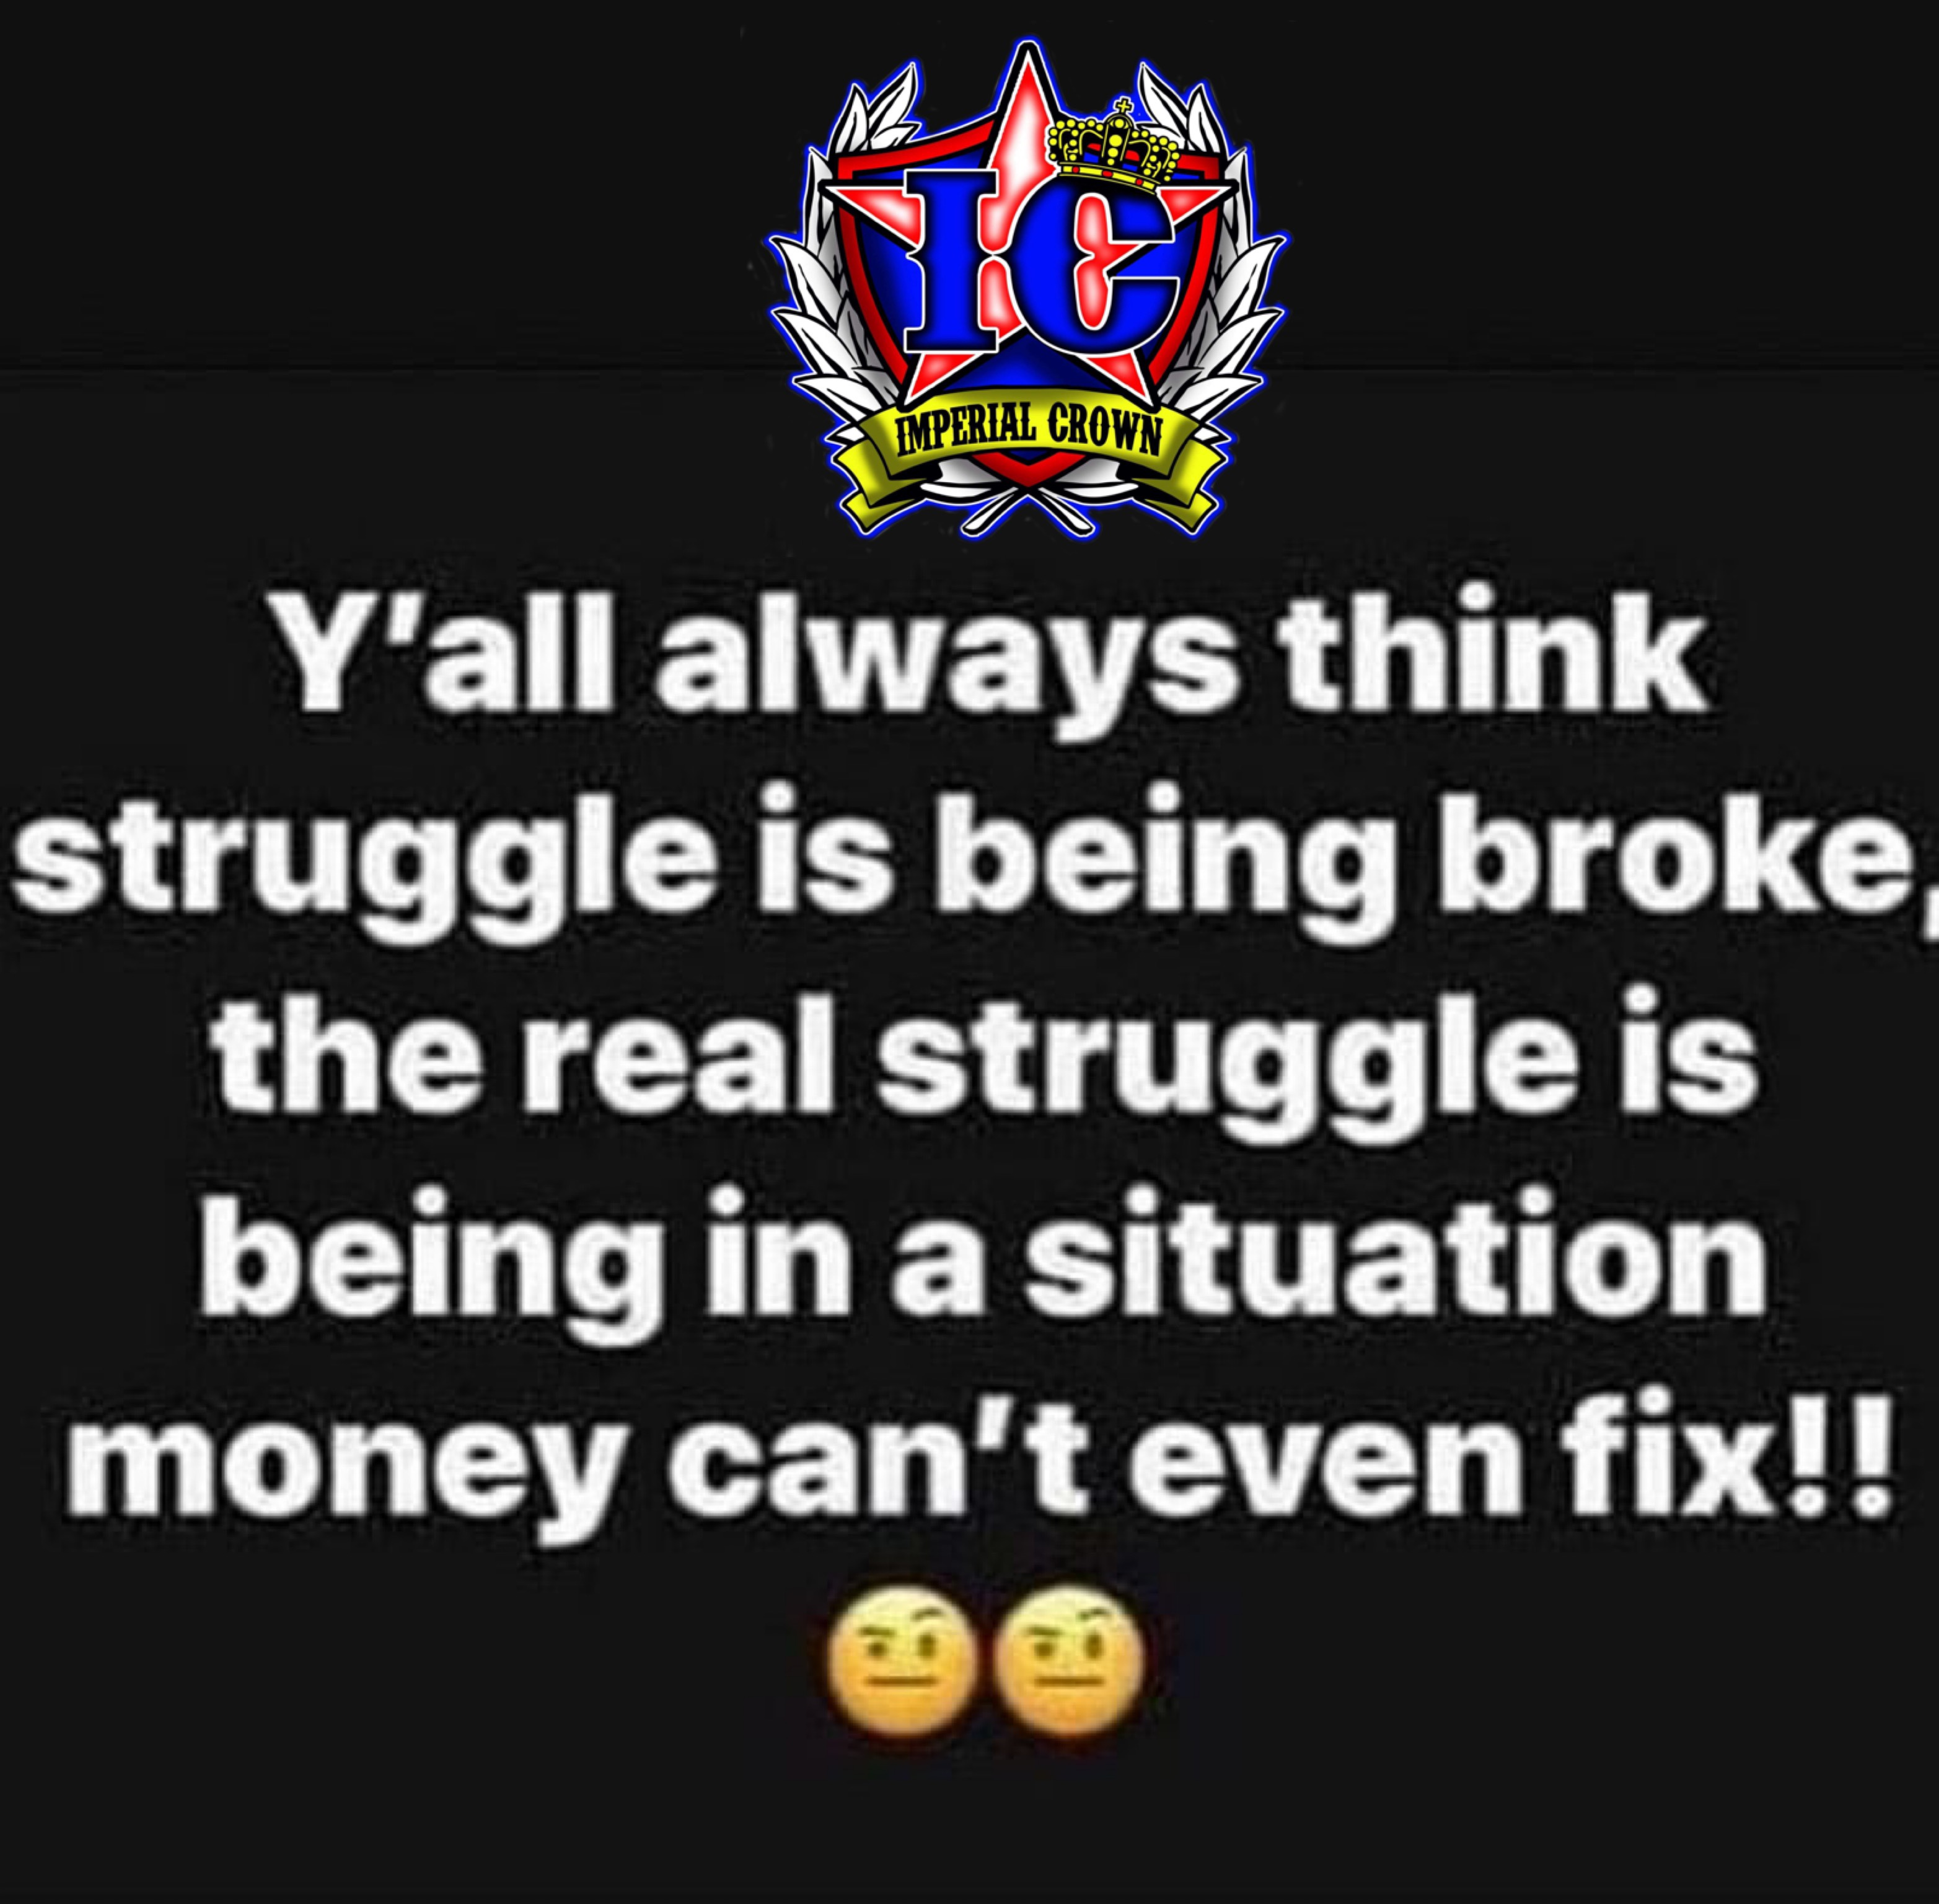 Y'all always think struggle is being broke the real struggle is being in a situation money can't even fix